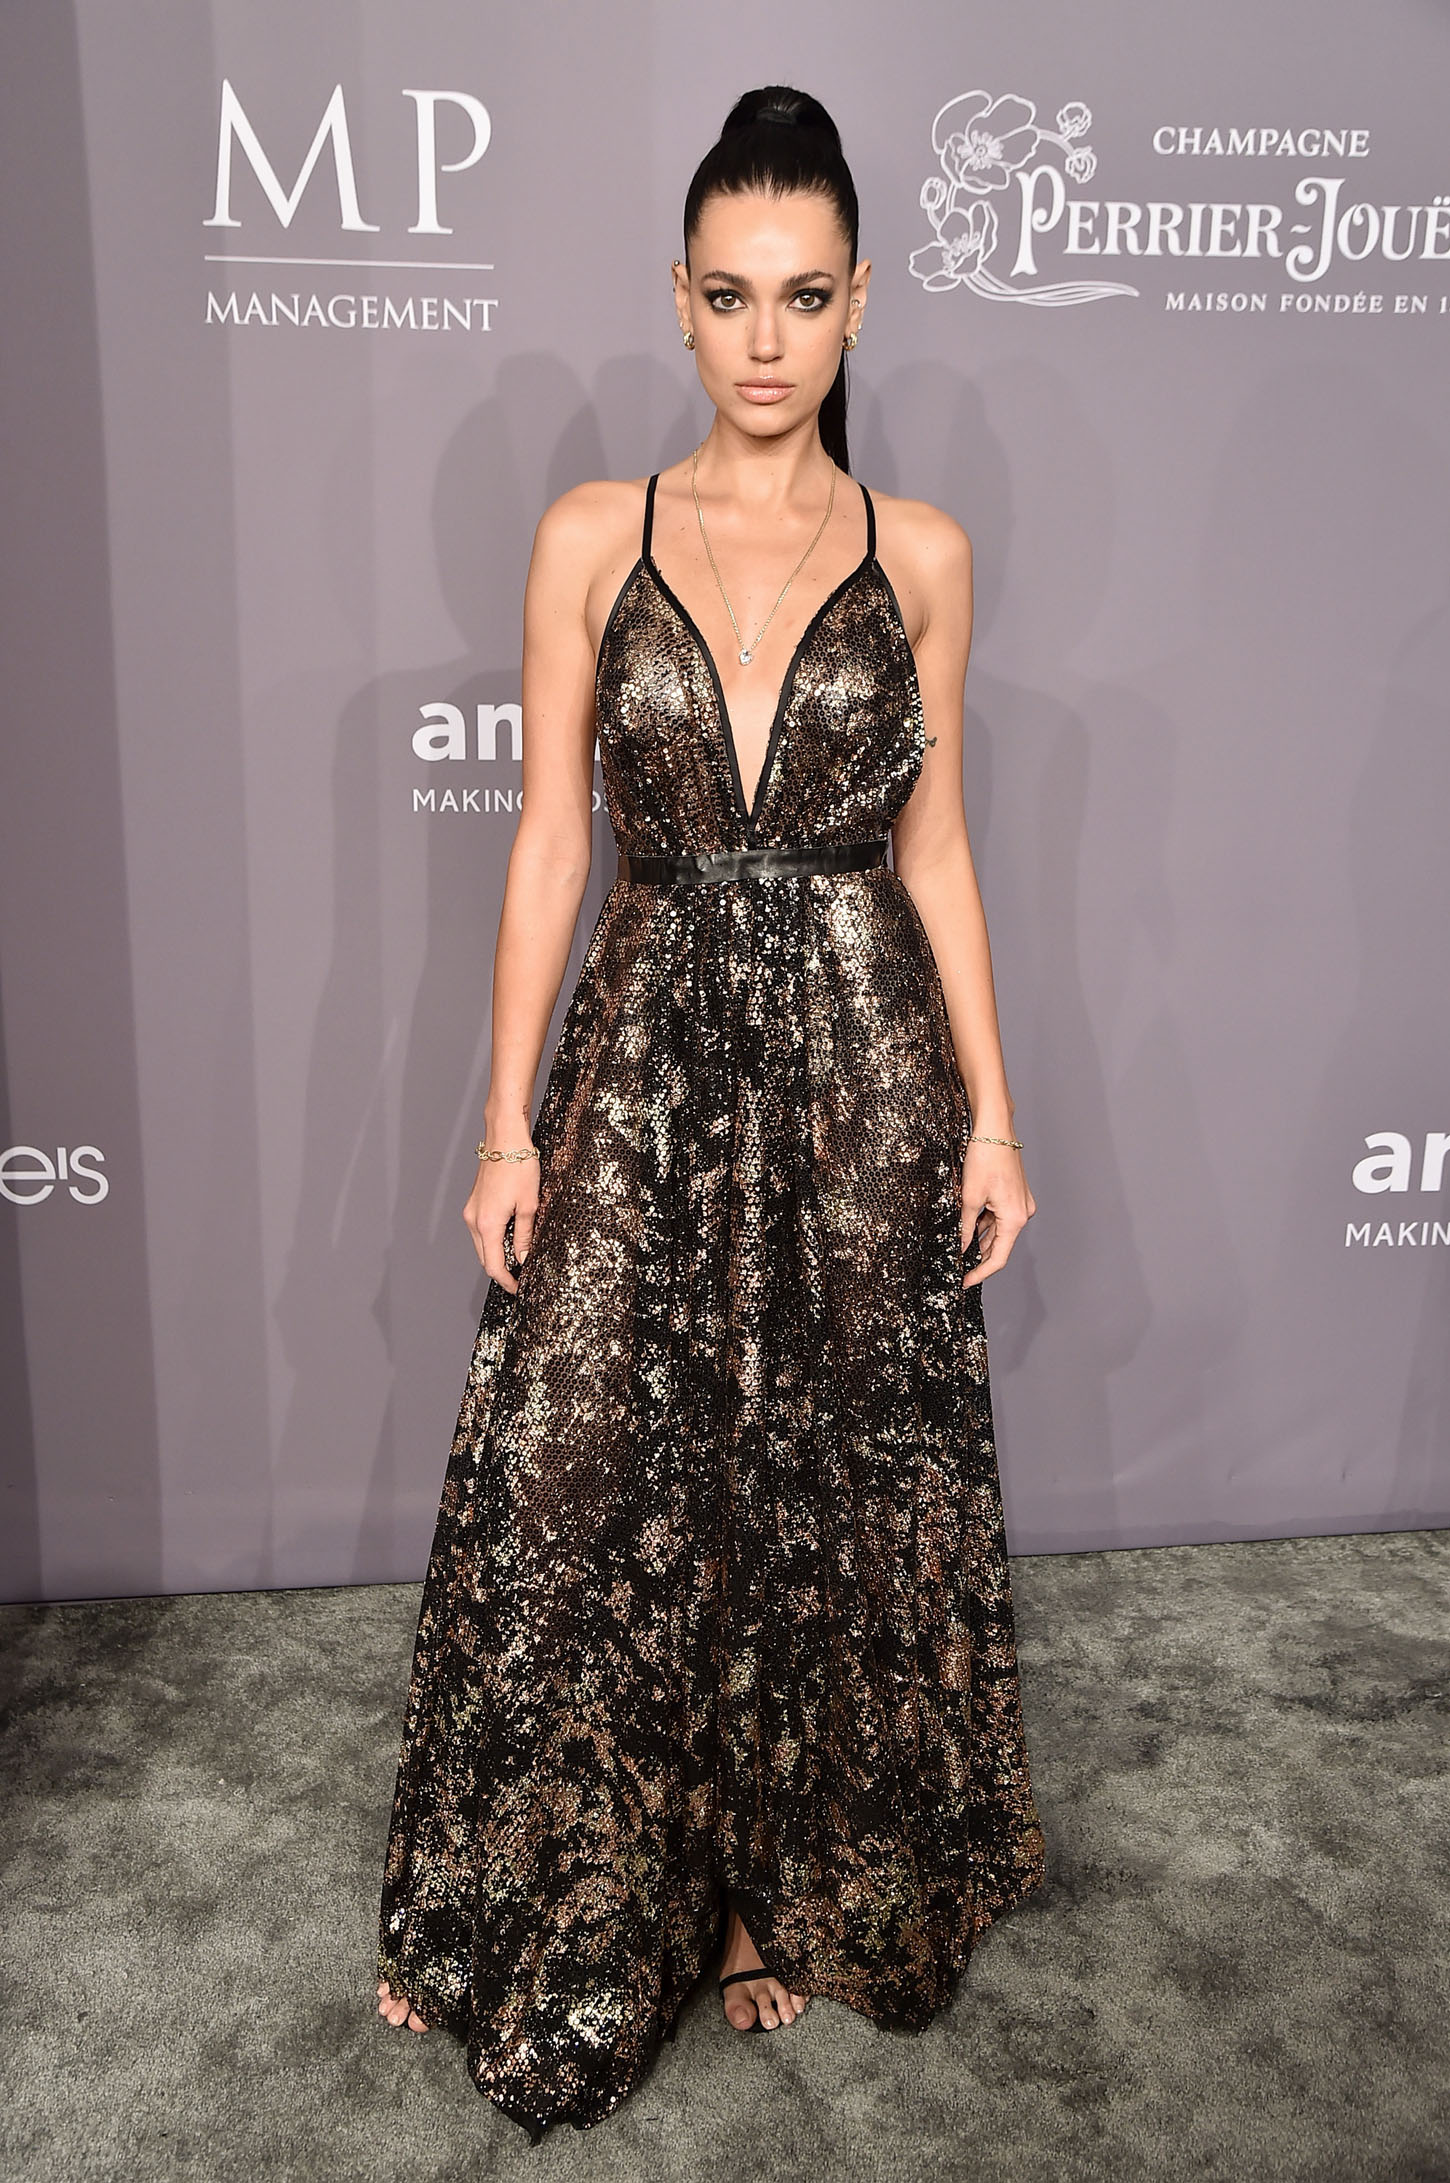 NEW YORK, NY - FEBRUARY 07:  Model Marianne Fonseca attends the 2018 amfAR Gala New York at Cipriani Wall Street on February 7, 2018 in New York City.  (Photo by Theo Wargo/Getty Images)